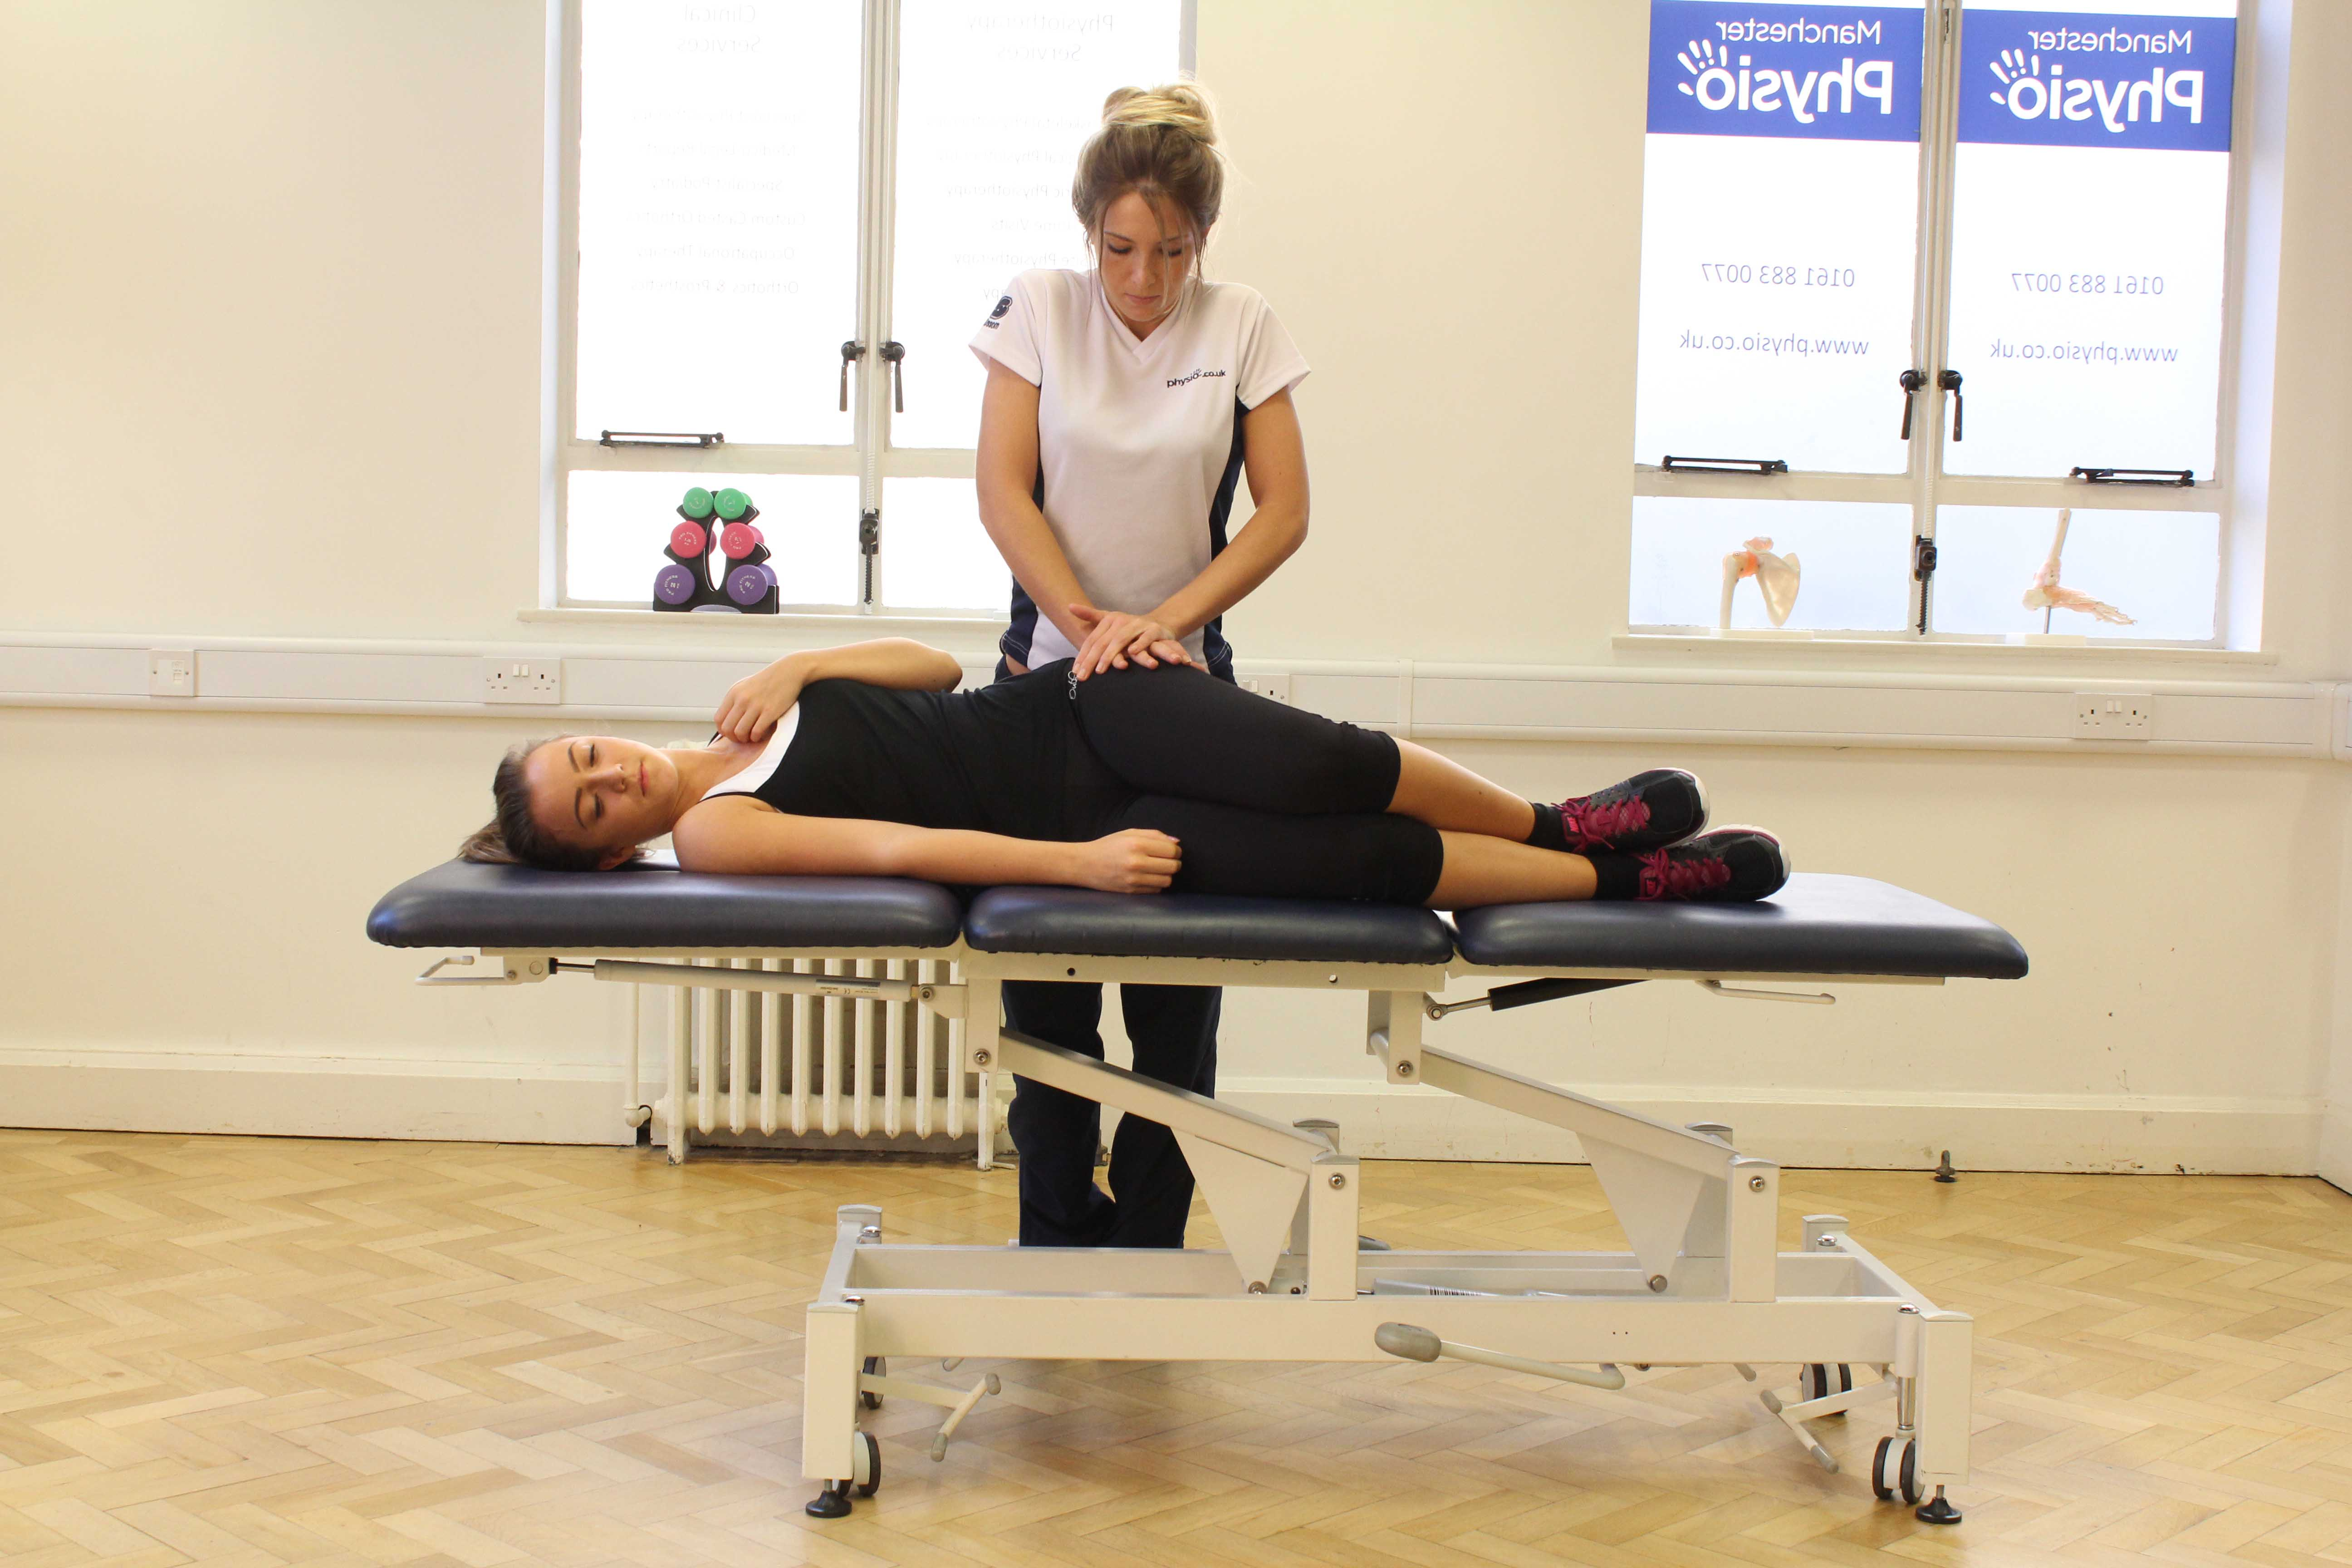 Lower vertebrea mobilisation and massage techniques applied by an experienced therapist